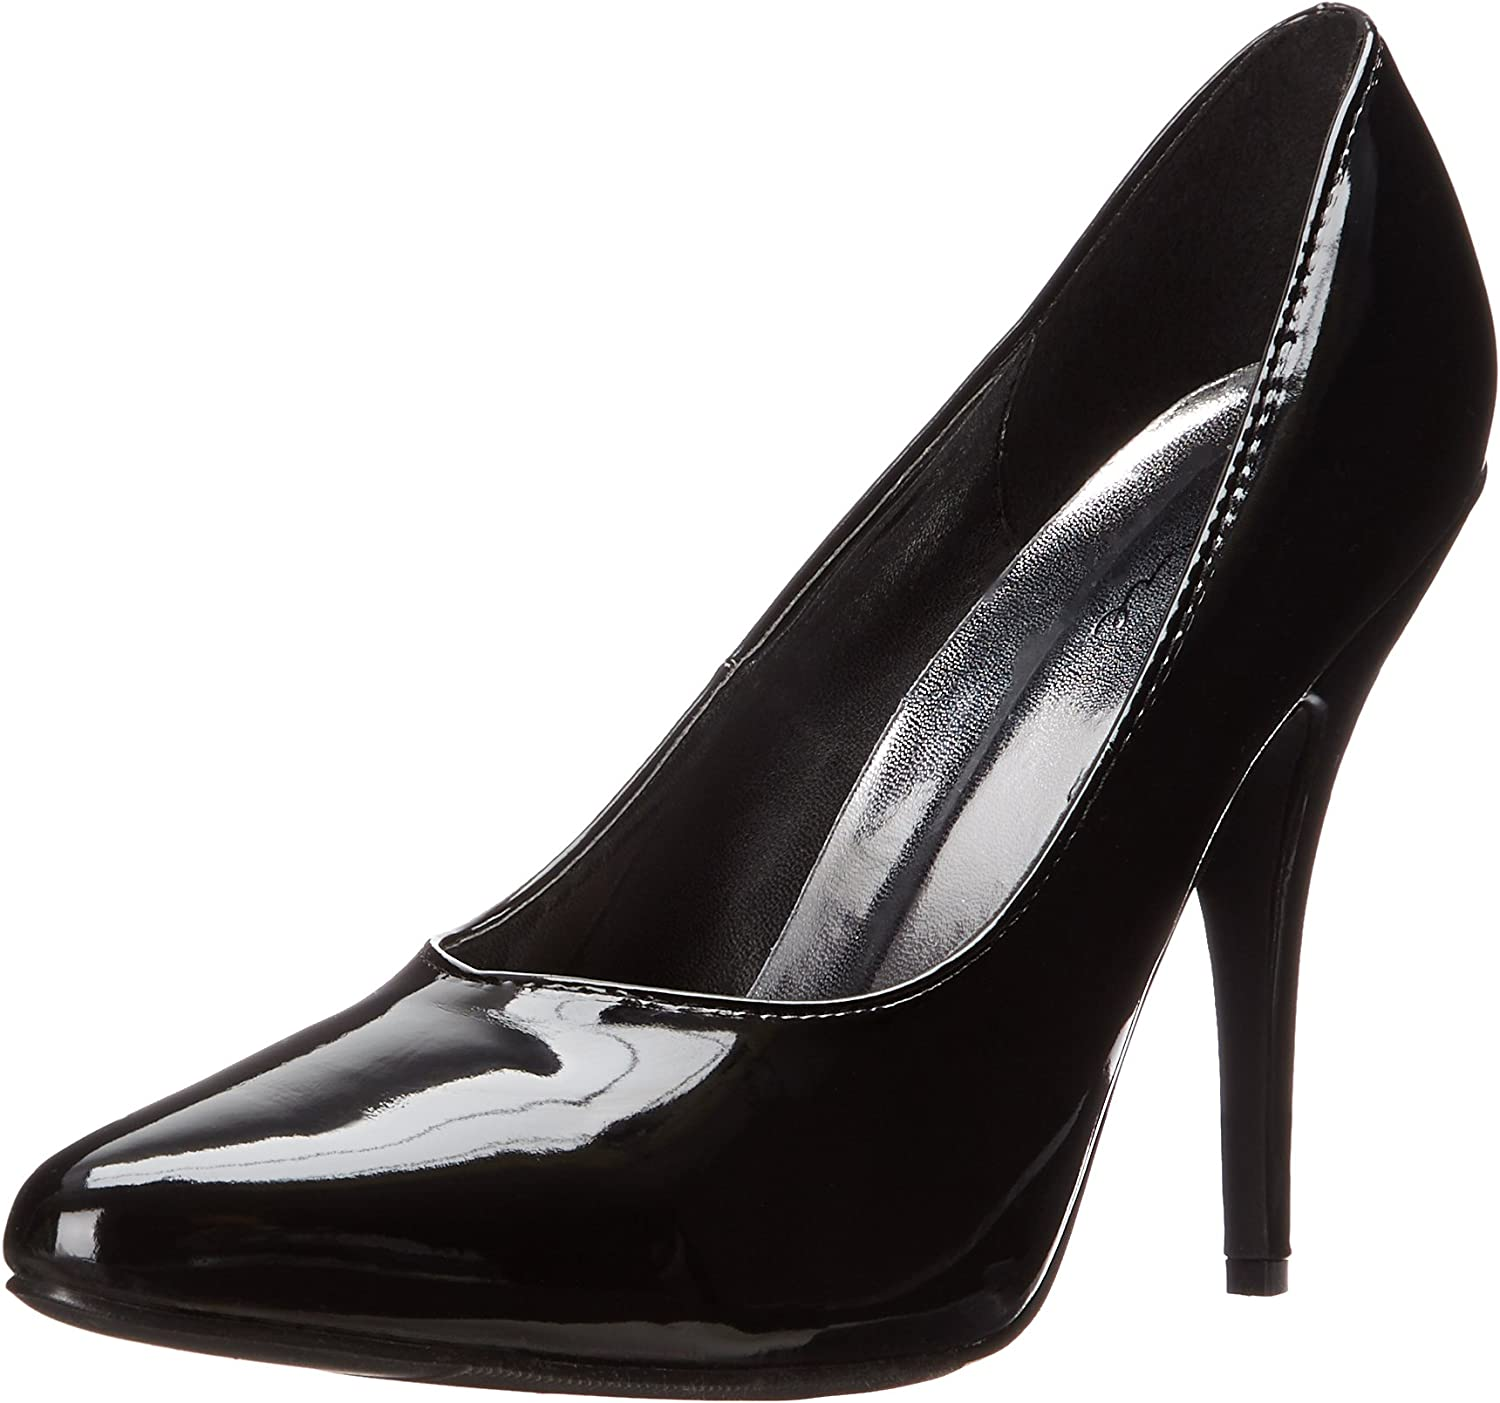 Ellie shoes Sexy Classic Pumps High Heel Womens Patent 8220 BLACK-12